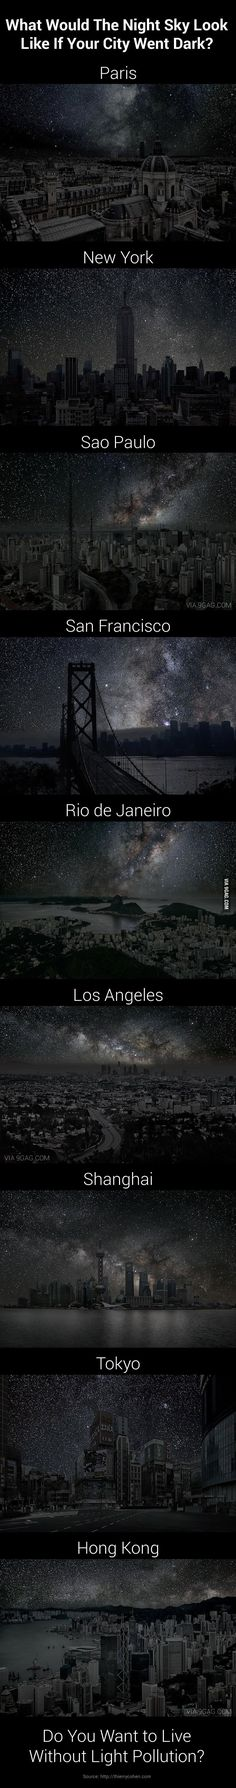 9 Amazing Night Sky of 9 Darkened Cities by thierrycohen via 9gag #Night_Sky #Light_Pollution